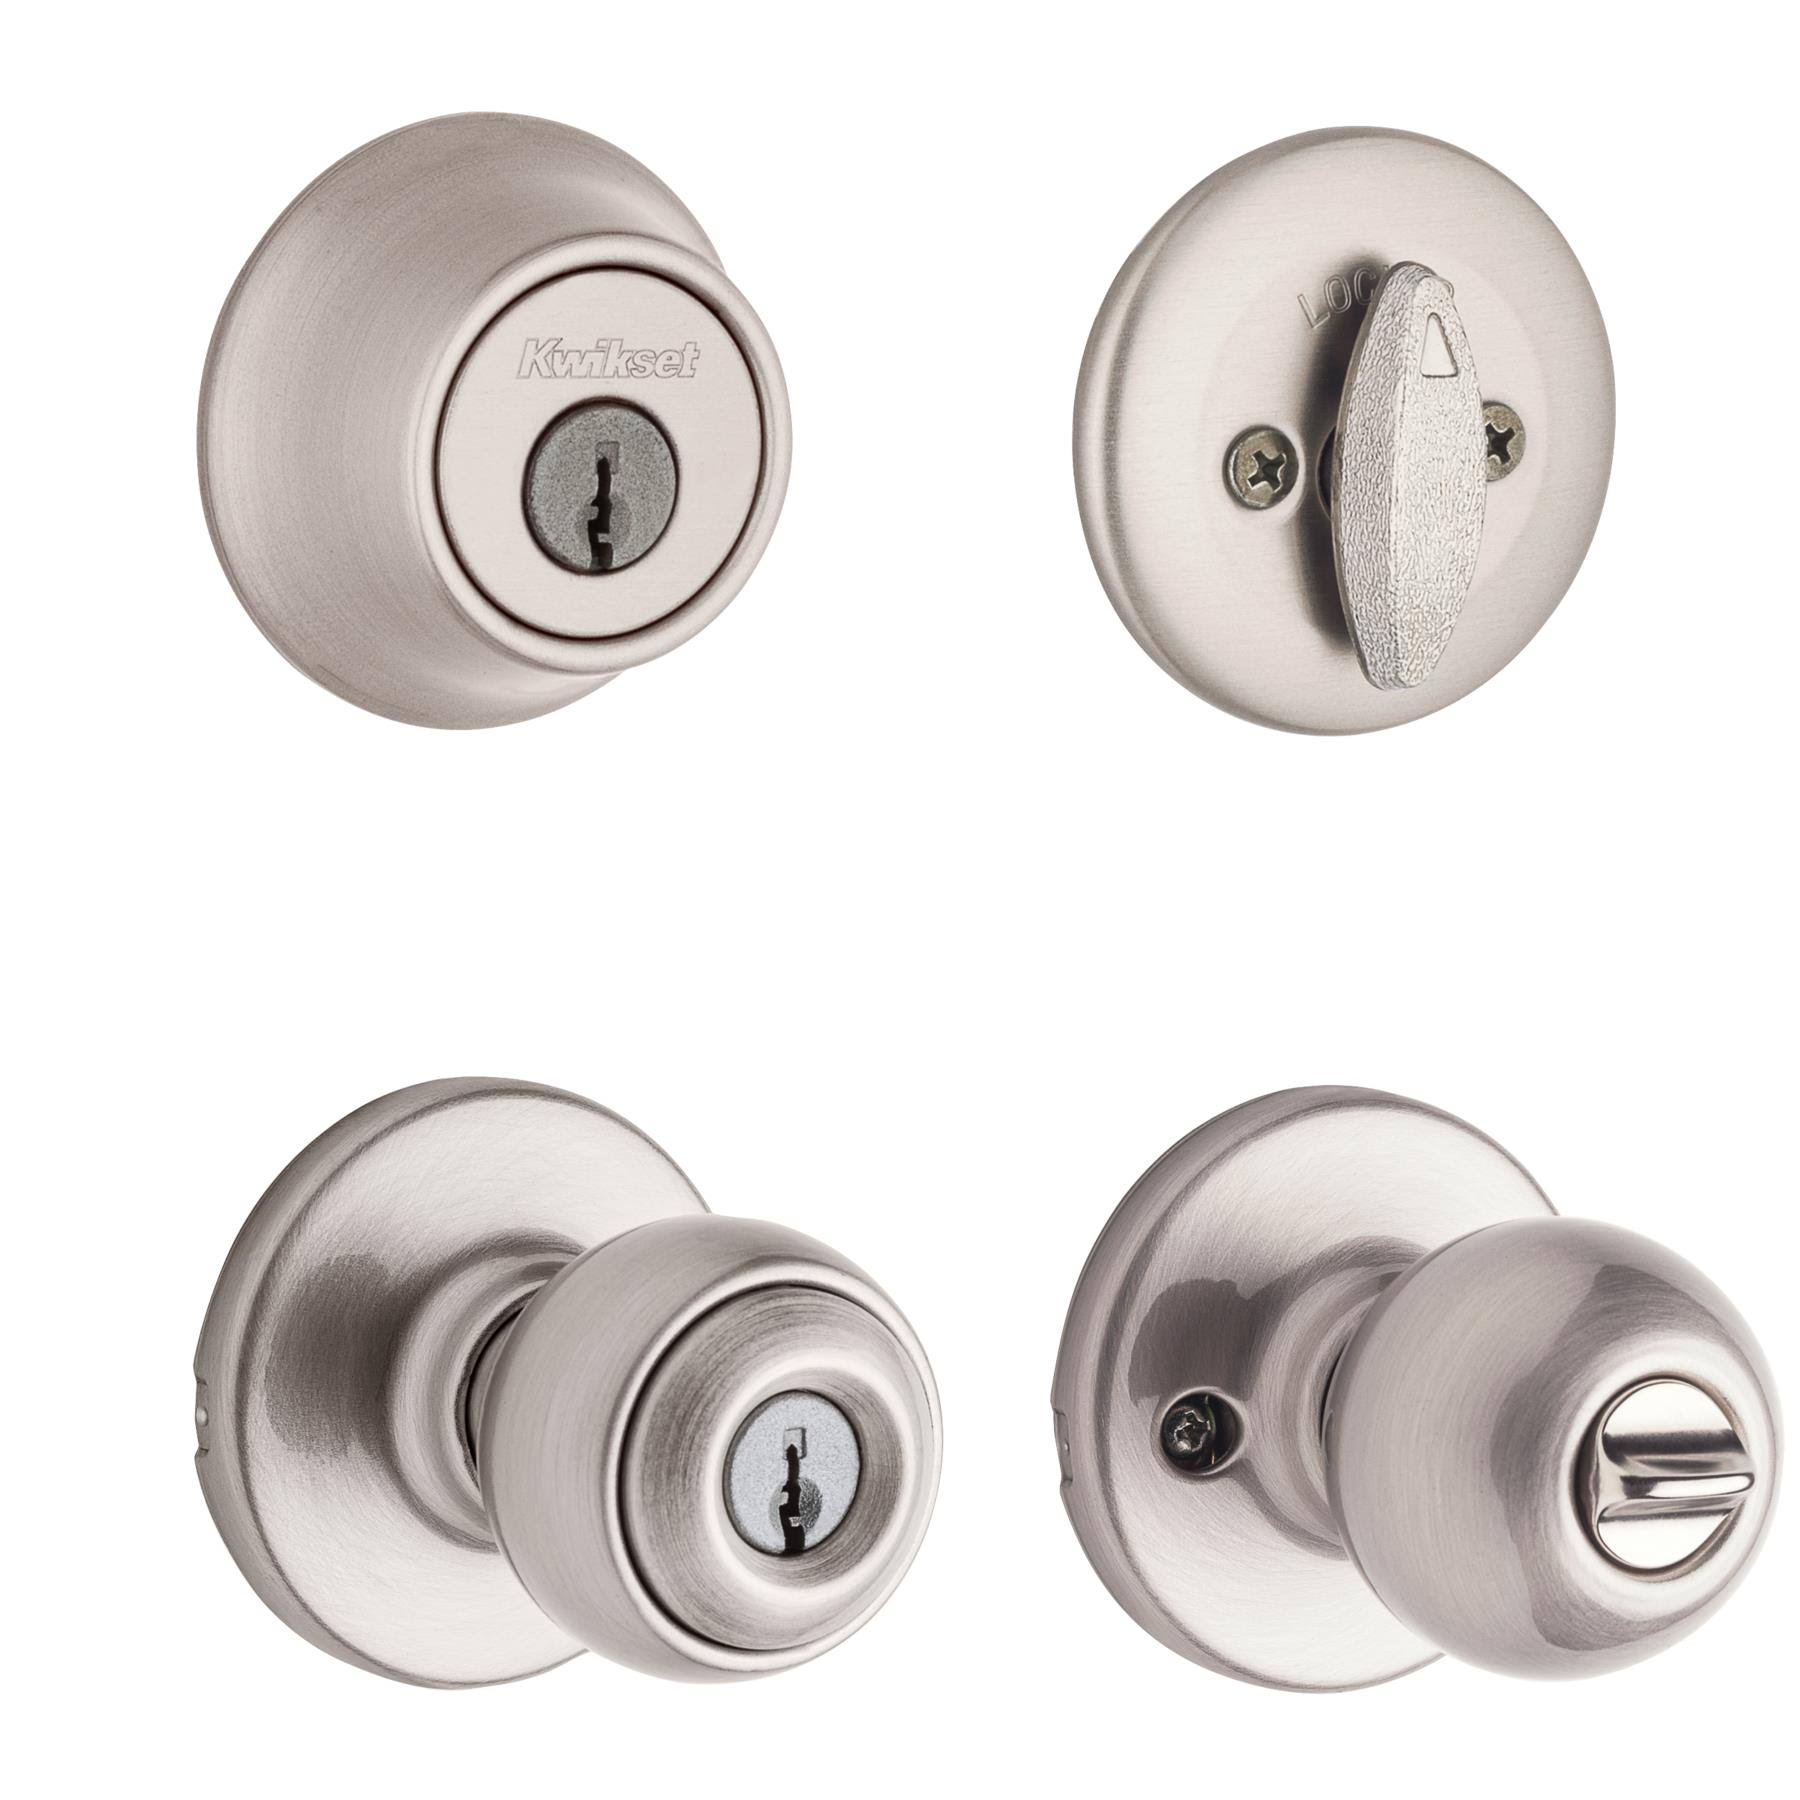 Kwikset Polo Entry Knob and Single Cylinder Deadbolt - Satin Nickel